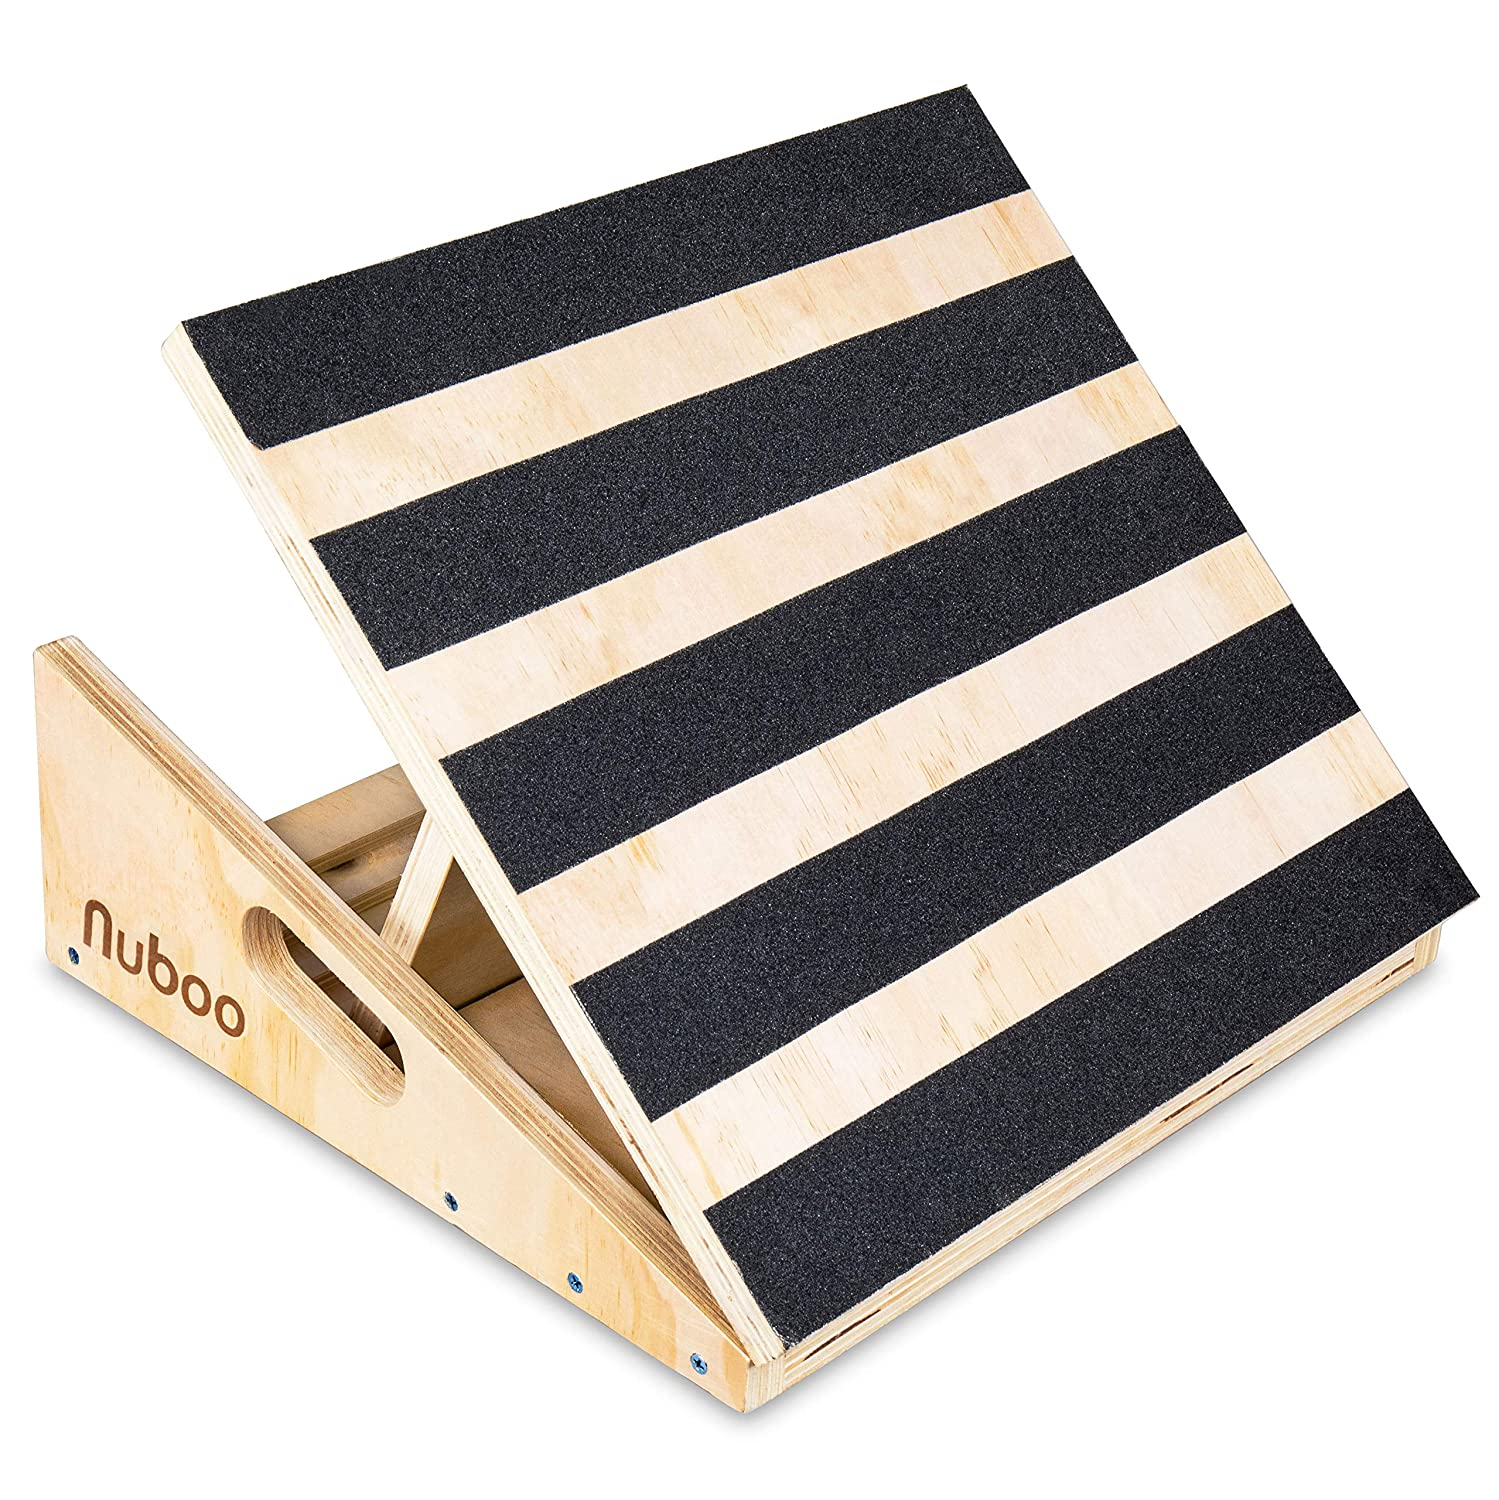 Extra Wide Wooden Calf Stretcher Slant Board for Inclined Stretches Physical Therapy and Recovery from Sports Injuries. 16 Wide and 5 Stage Adjustable Incline for Gradual and Long-term Recovery.